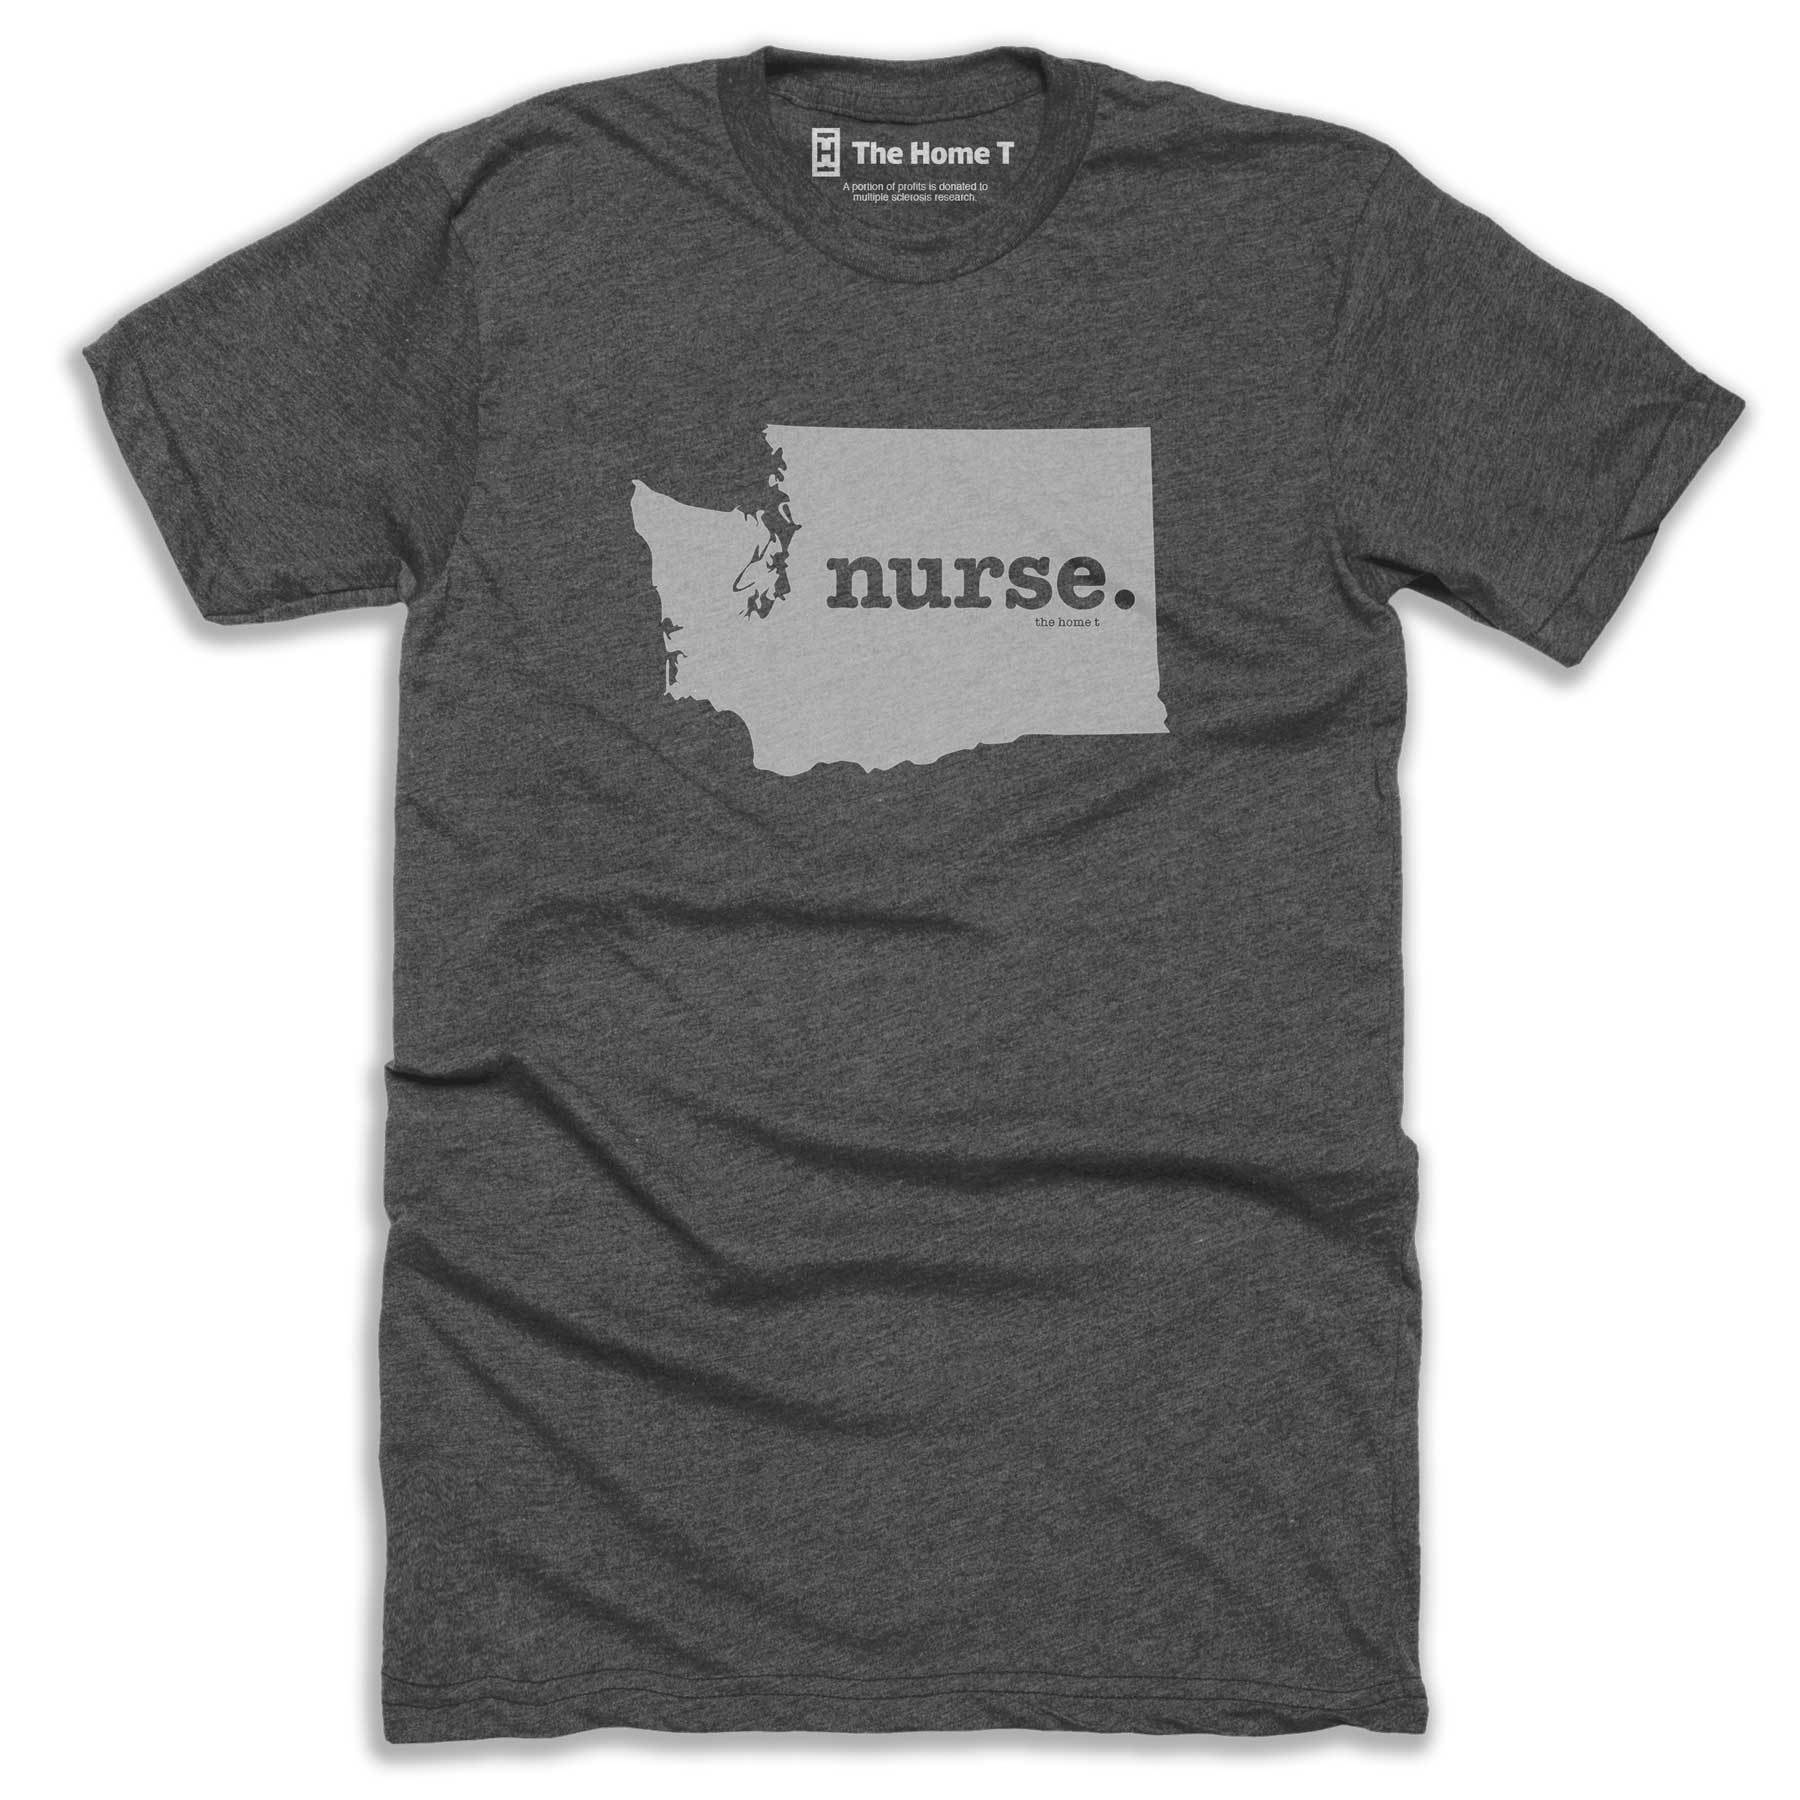 Washington Nurse Home T-Shirt